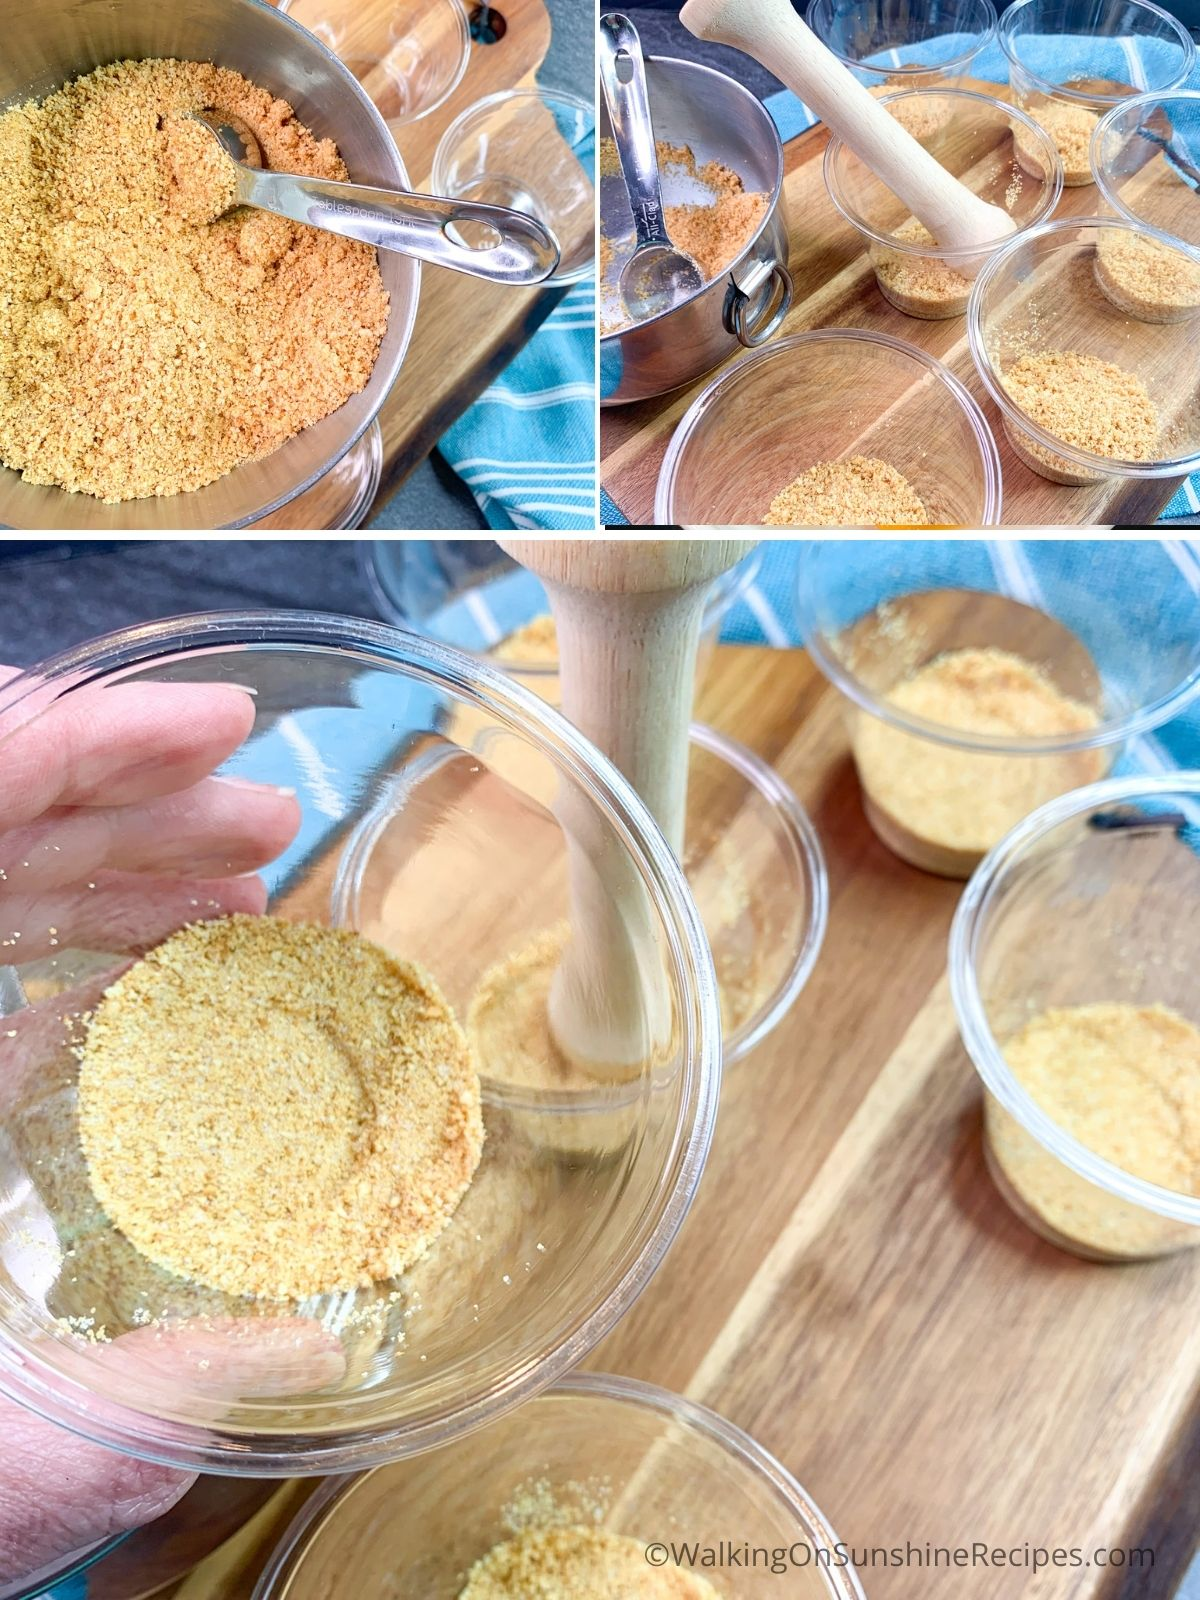 Add crushed graham crackers to small cups.